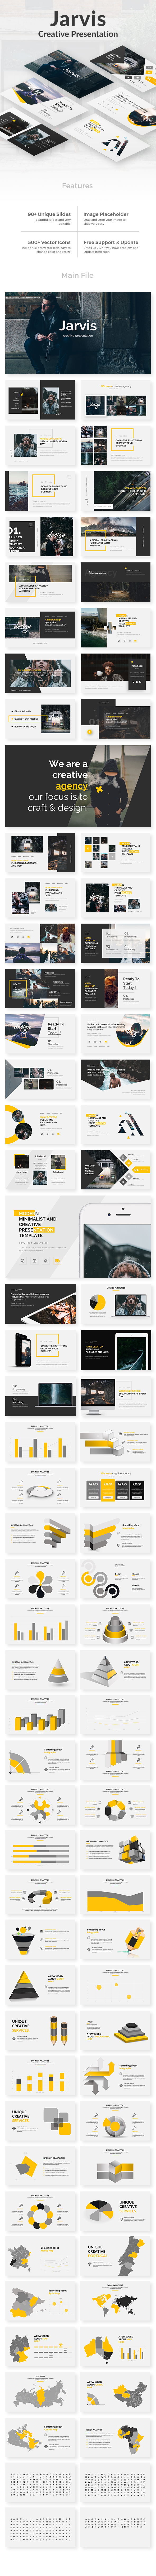 GraphicRiver Jarvis Creative Powerpoint Template 21107335